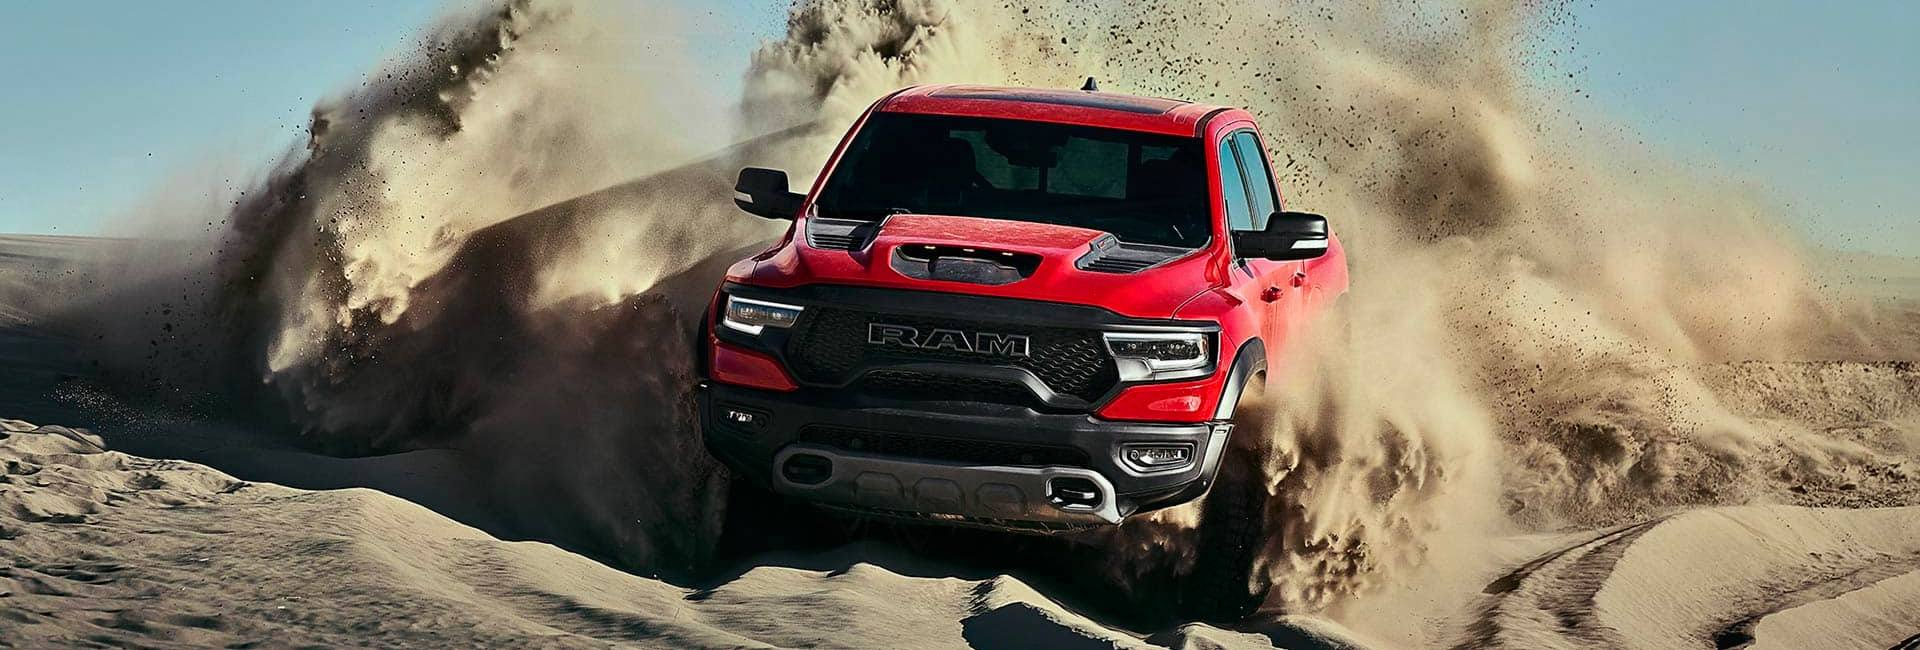 2021 RAM 1500 TRX in motion through the sand